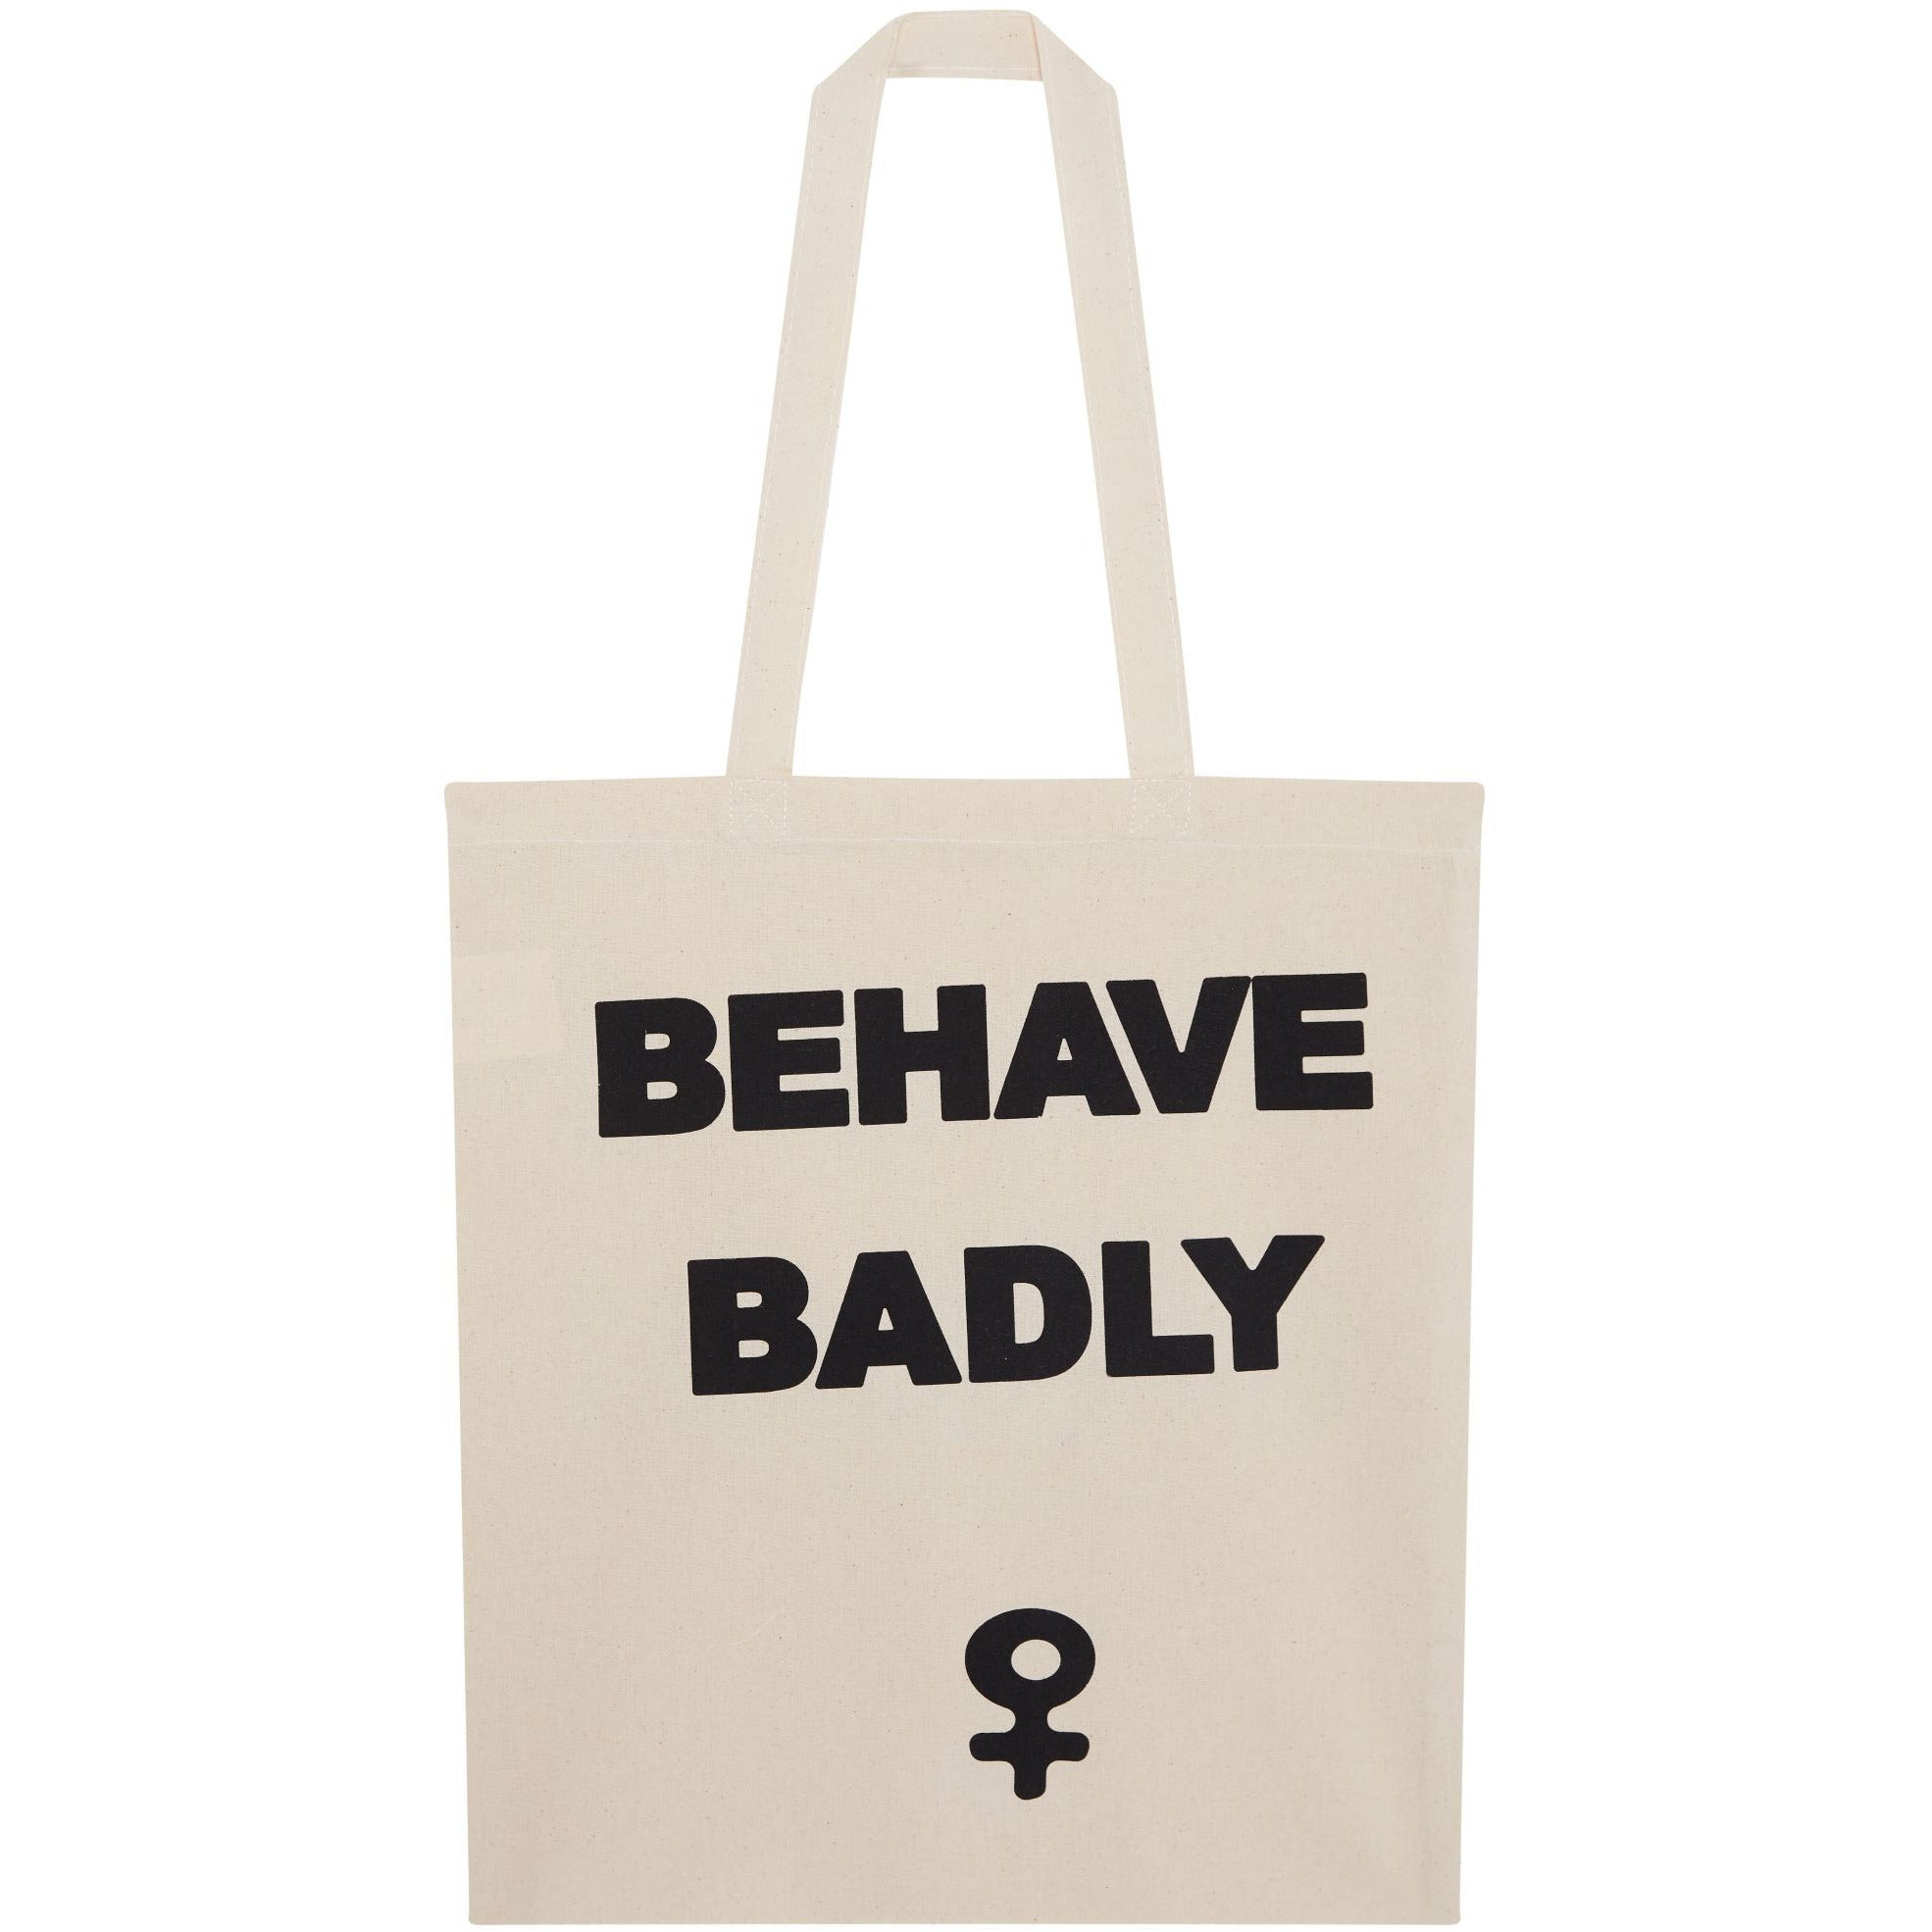 Featured image for the project: Behave Badly Tote Bag